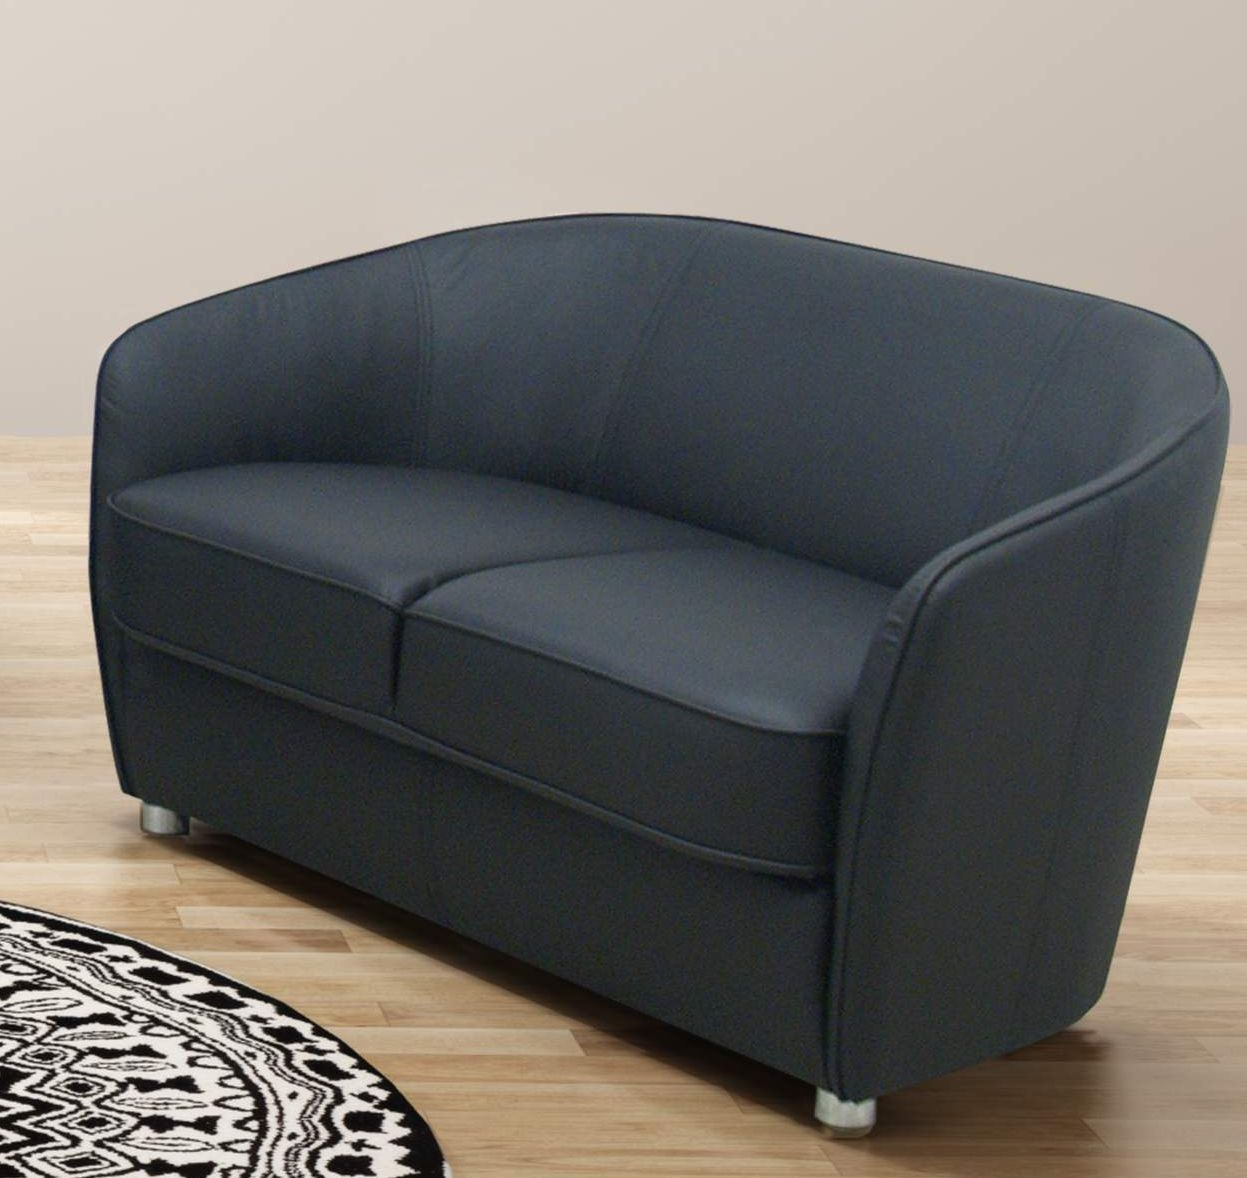 Couch Sessel 3 Tlg Couchgarnitur 2er Sofa 3er Couch Sessel Federkern Farbwahl Do Celia